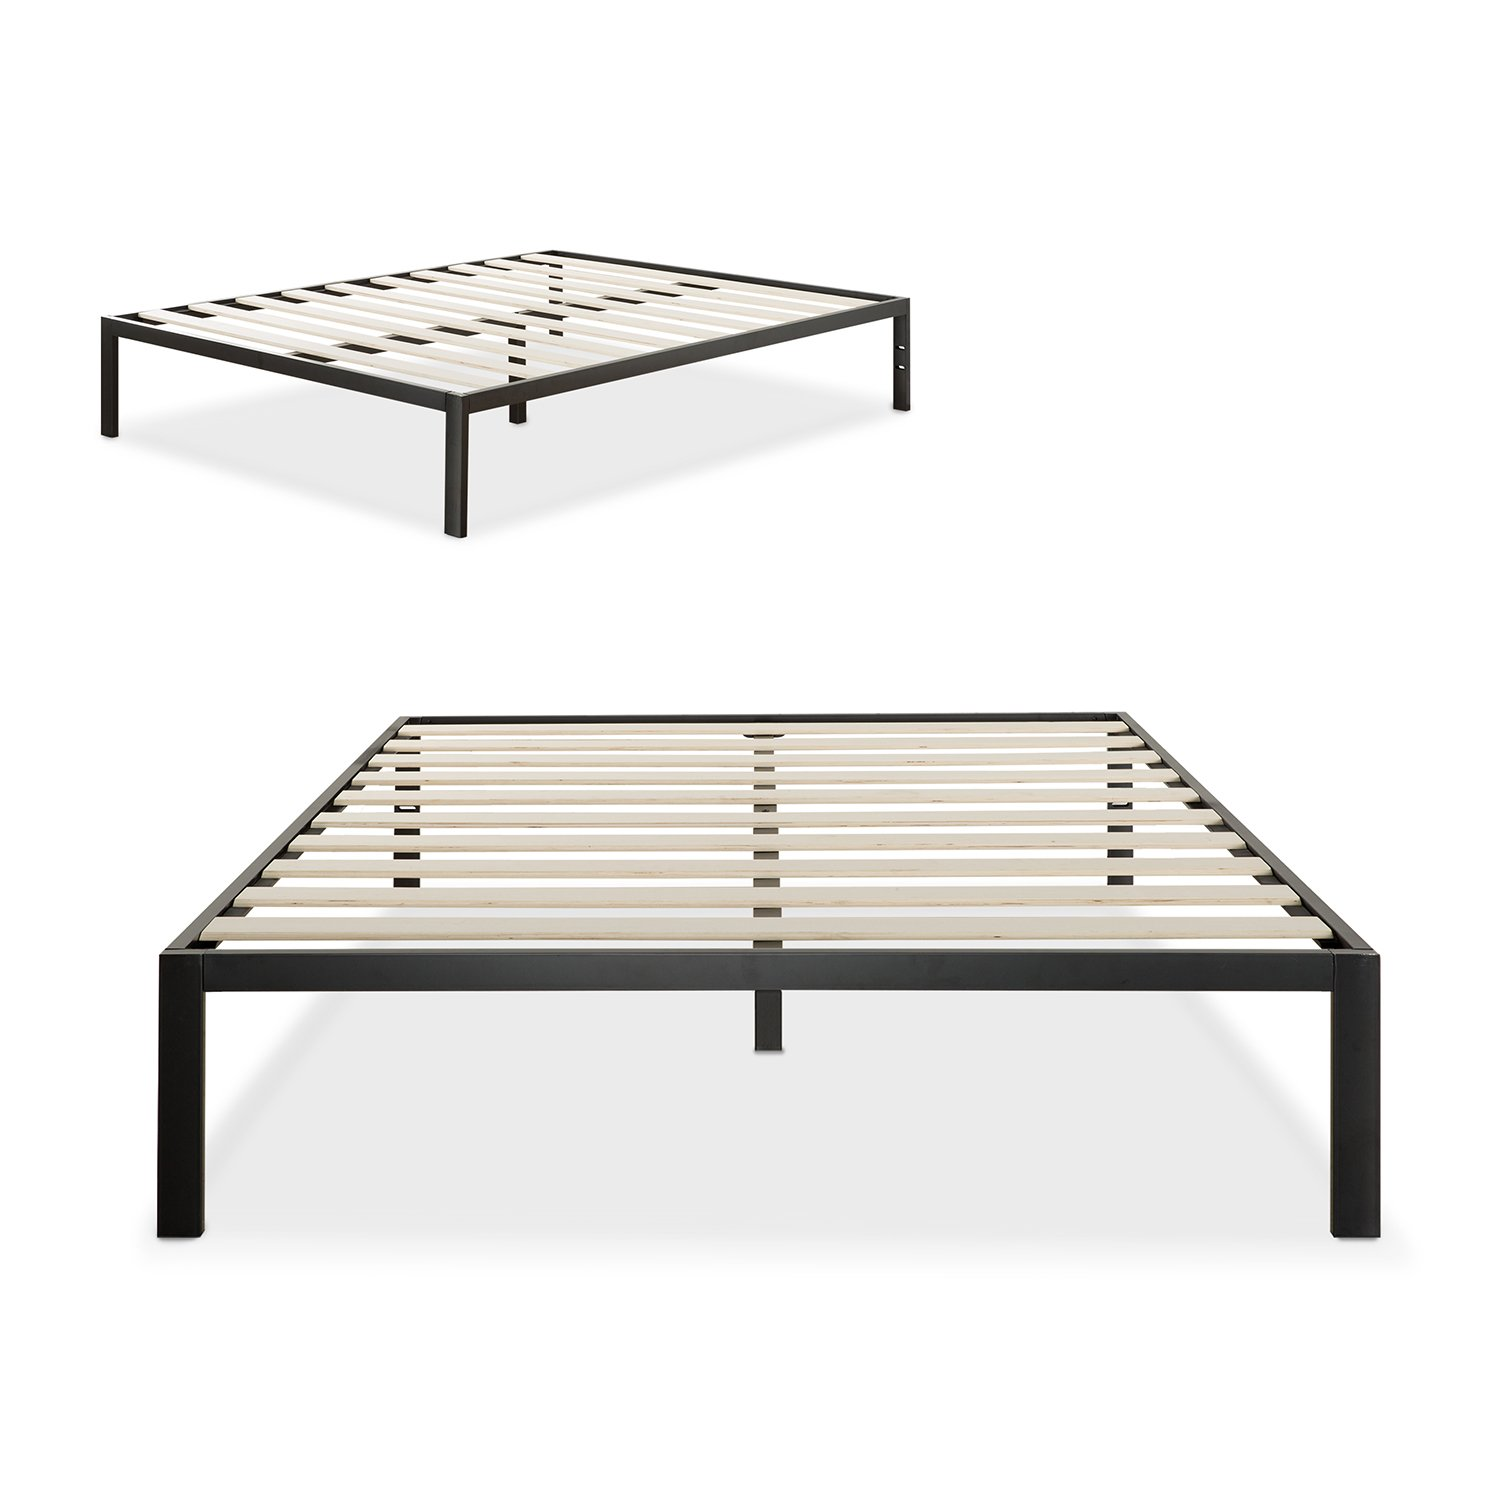 zinus modern studio 14 inch platform 1500 metal bed frame mattress foundation no boxspring needed wooden slat support black queen - Queen Bed And Frame